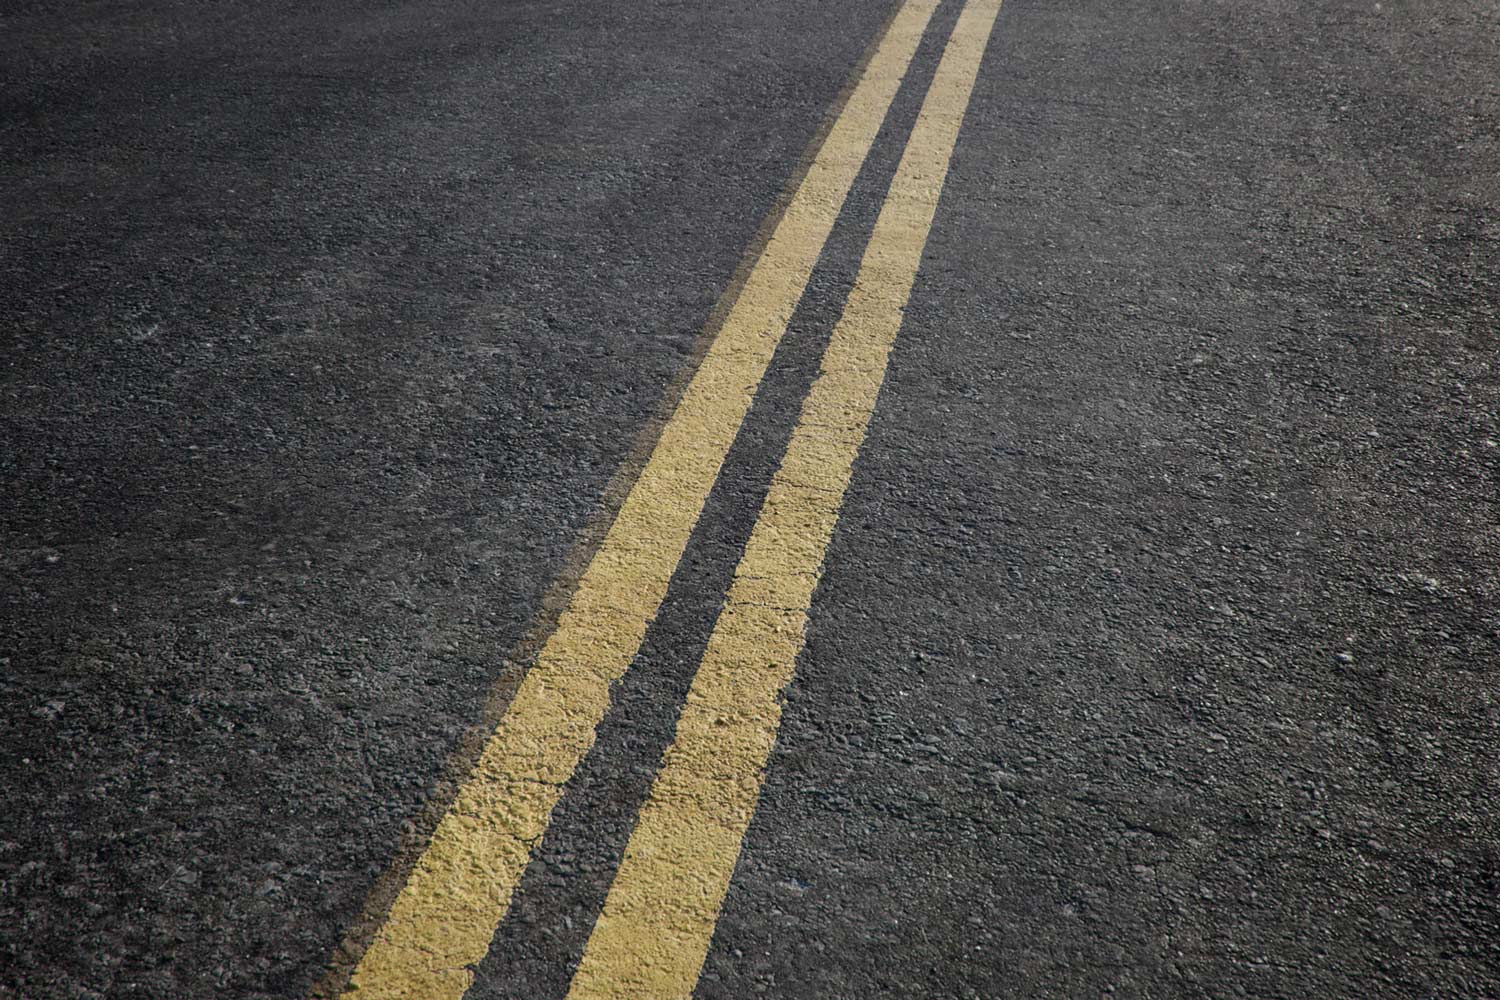 road stripes texture home of textures for 3d artists